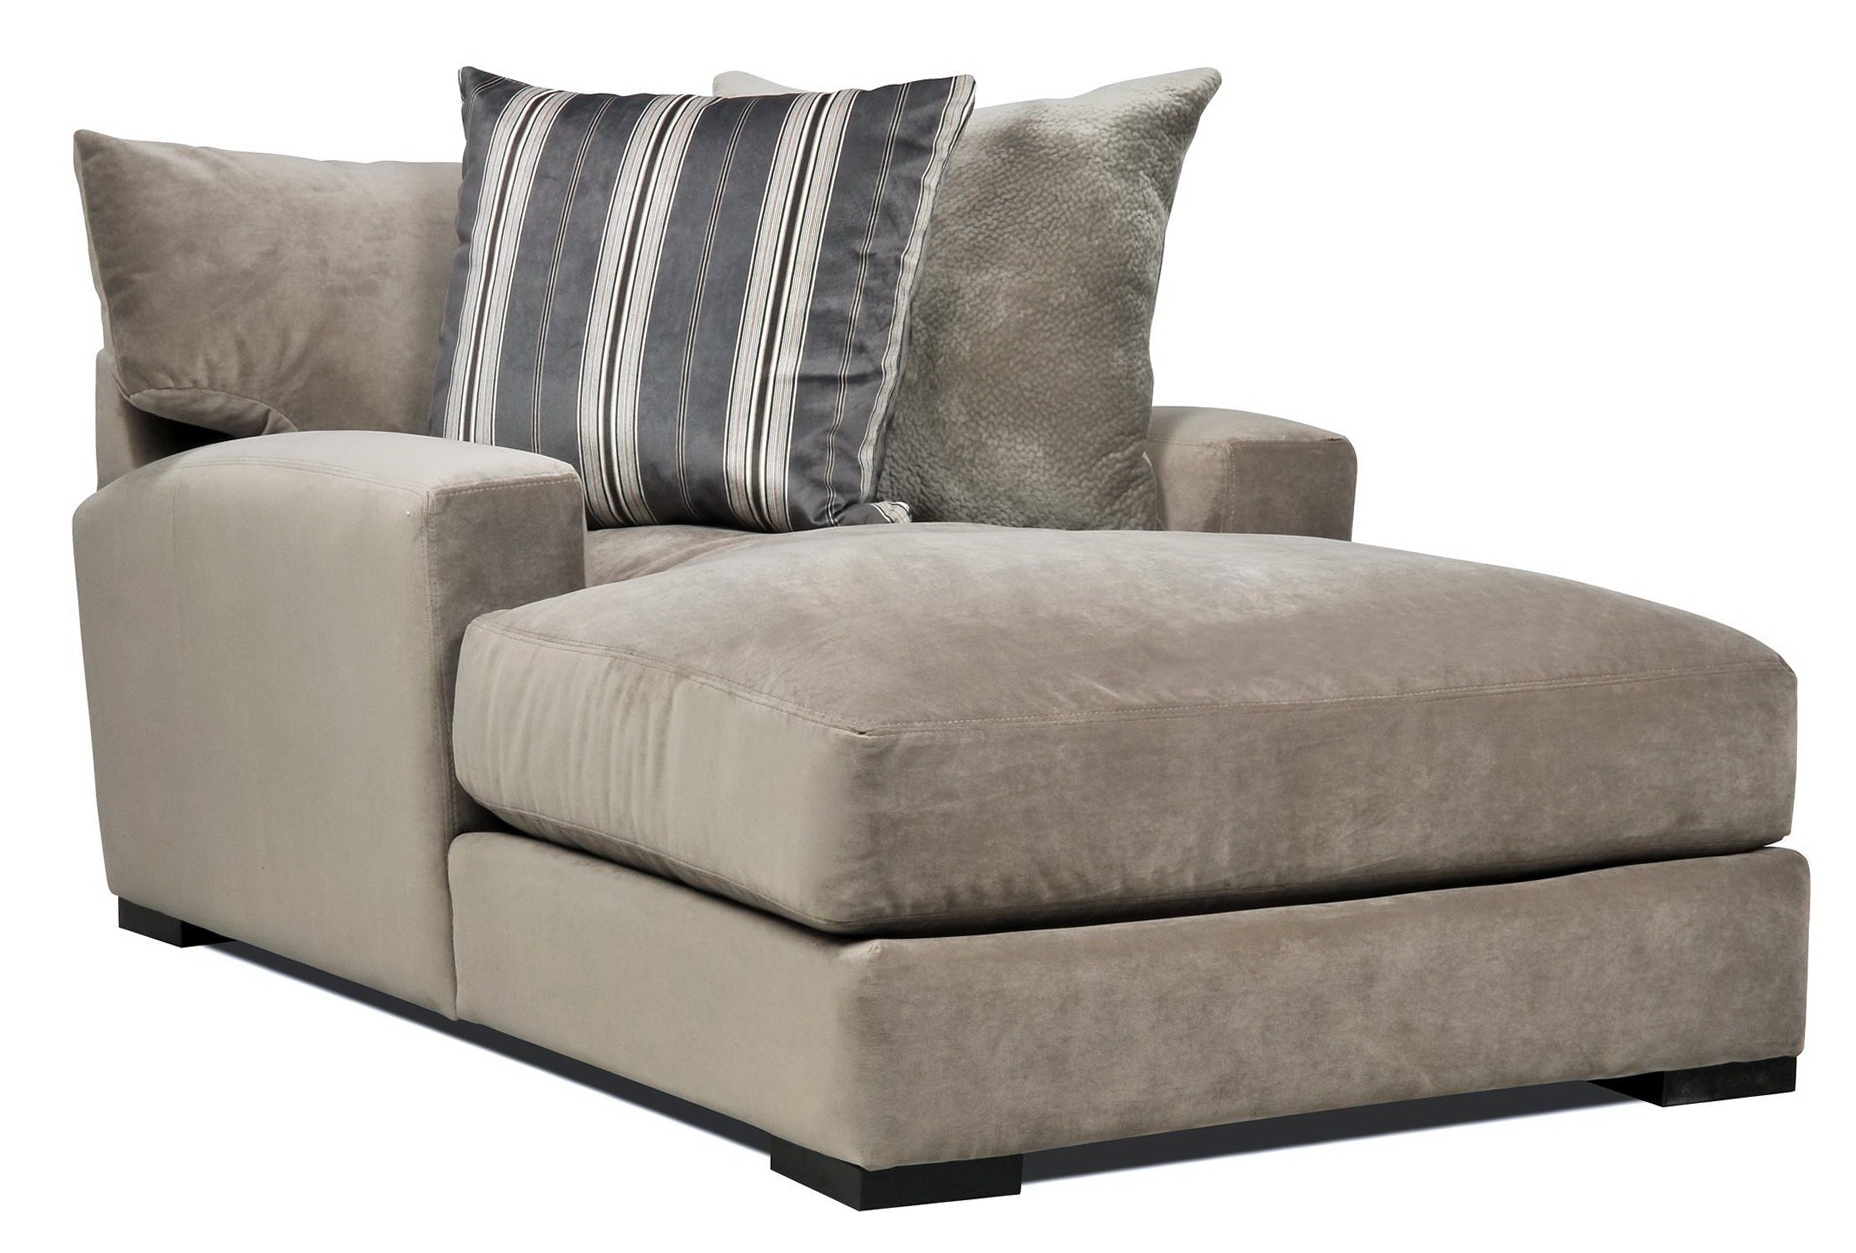 Most Popular Chaise Lounges For Two With Double Wide Chaise Lounge Indoor With 2 Cushions (View 13 of 15)